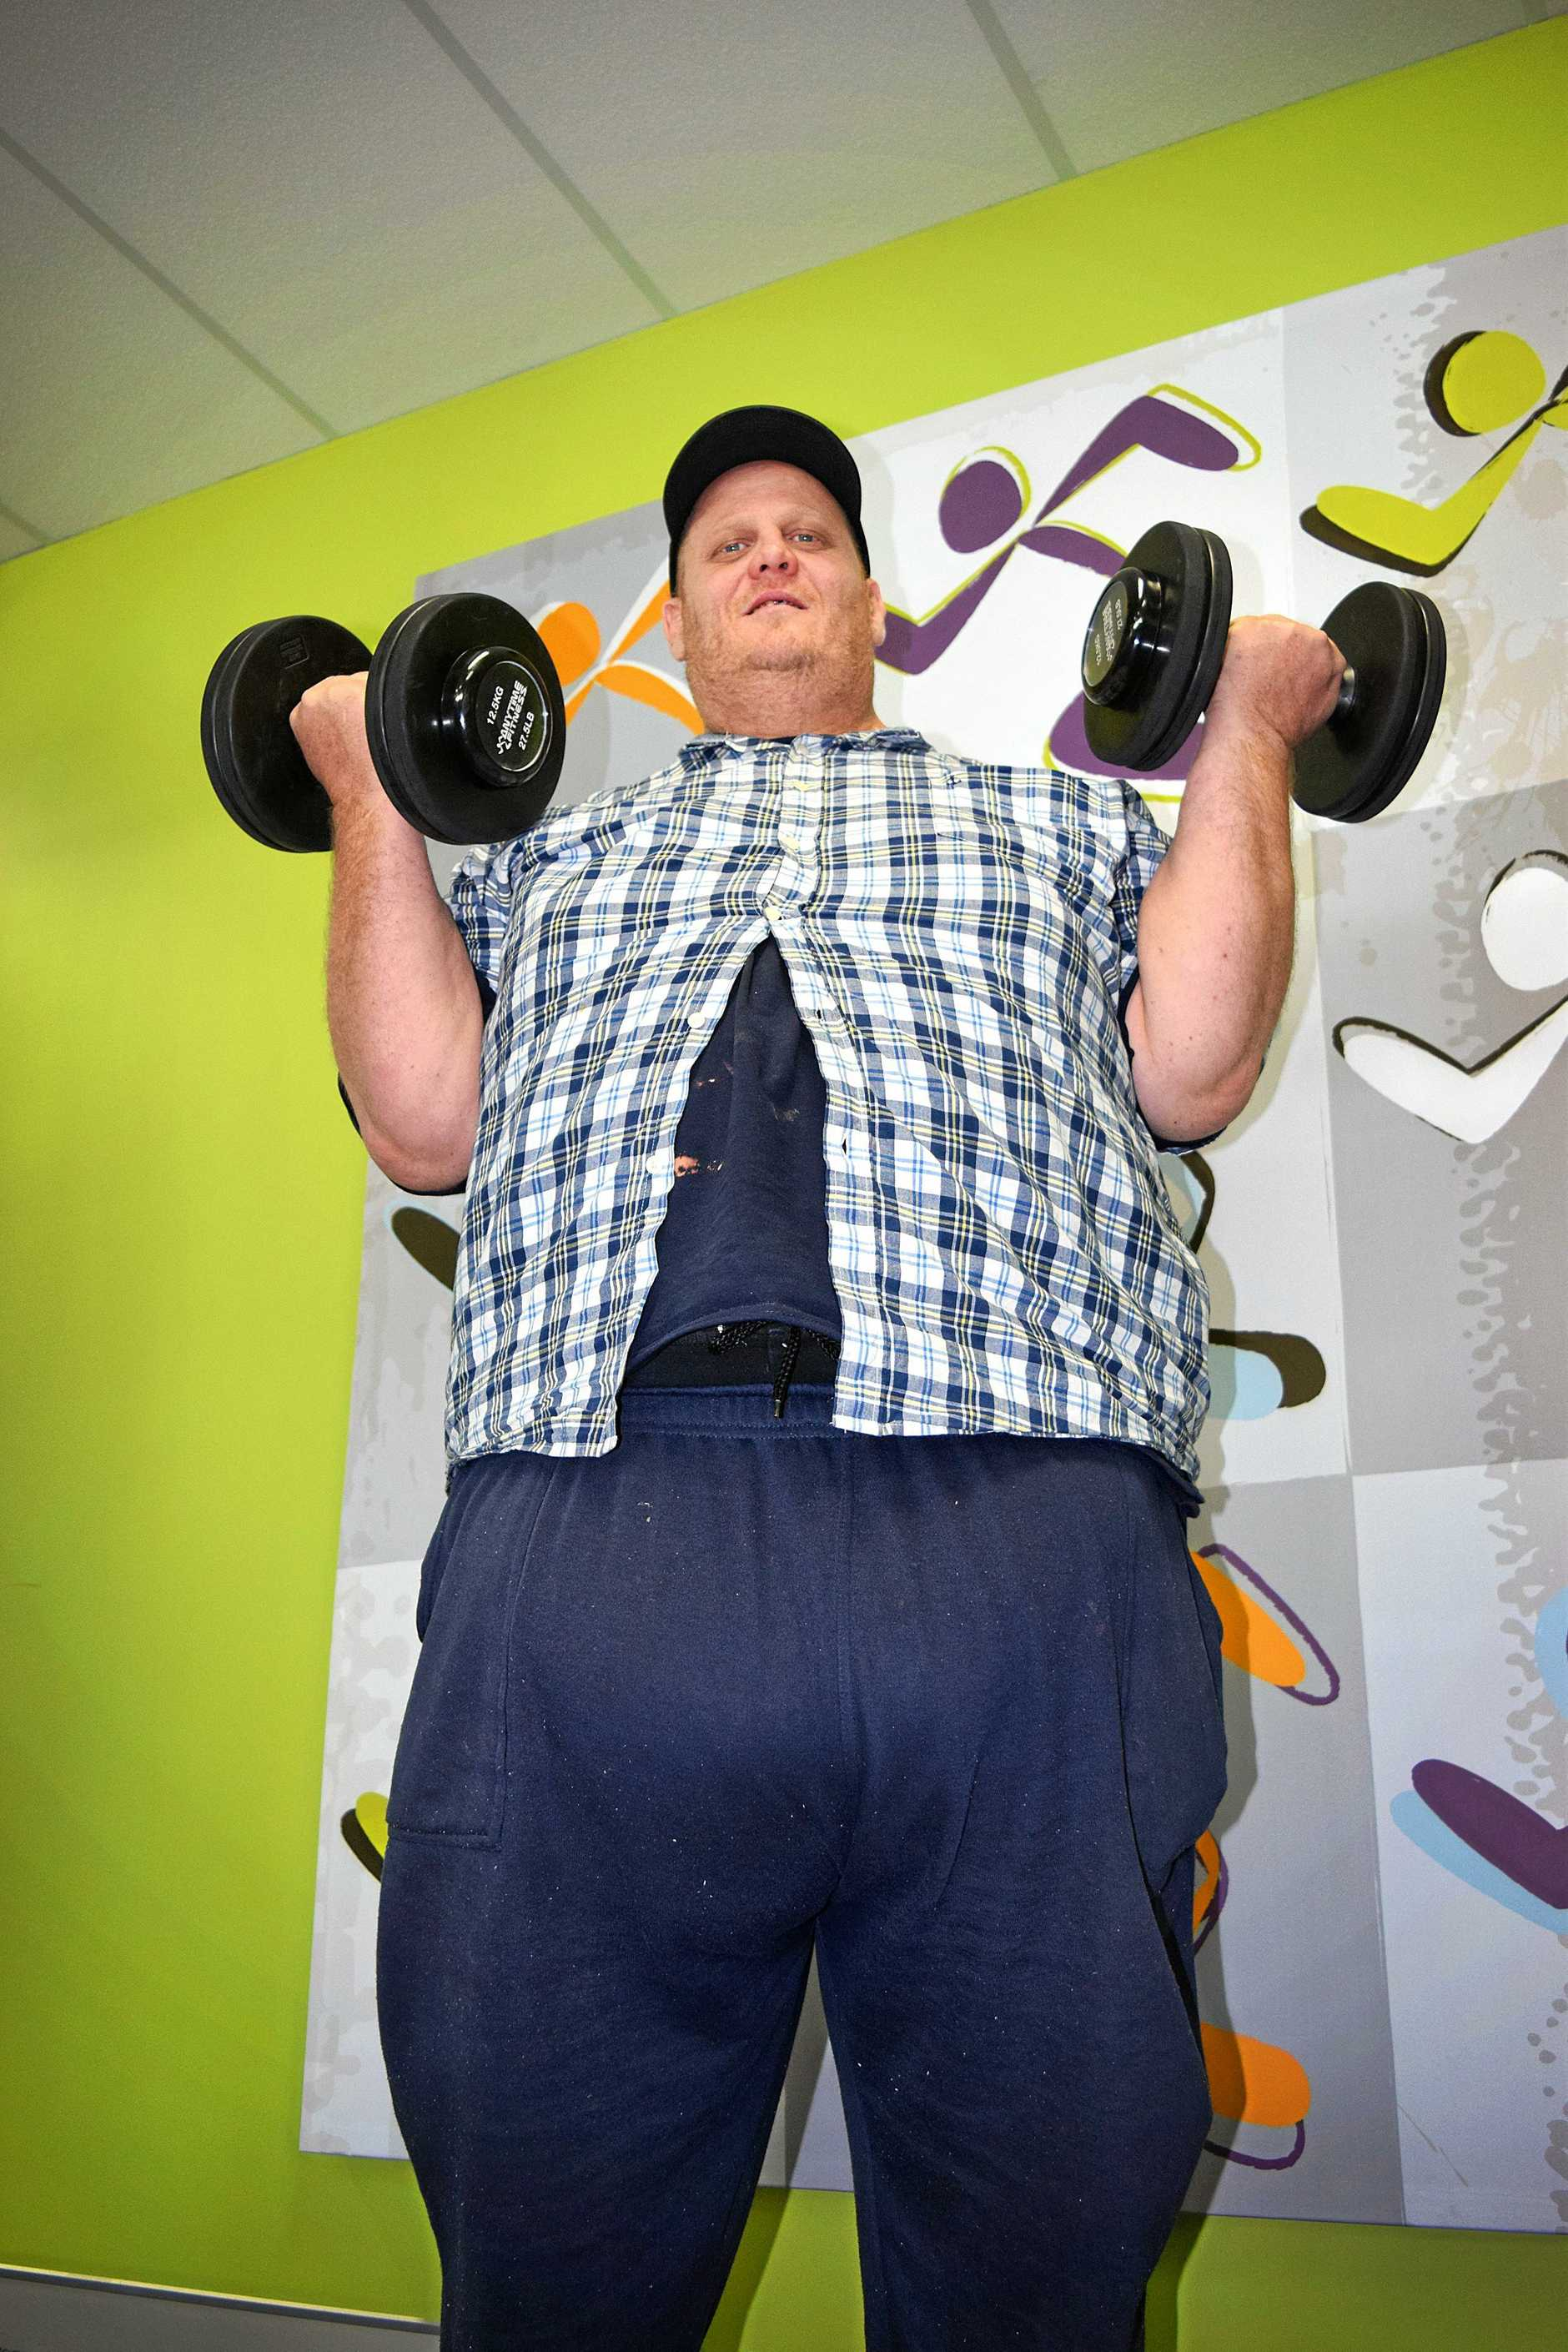 Ted Logan in his own personal weight loss  challenge wanting to loss 100kg.